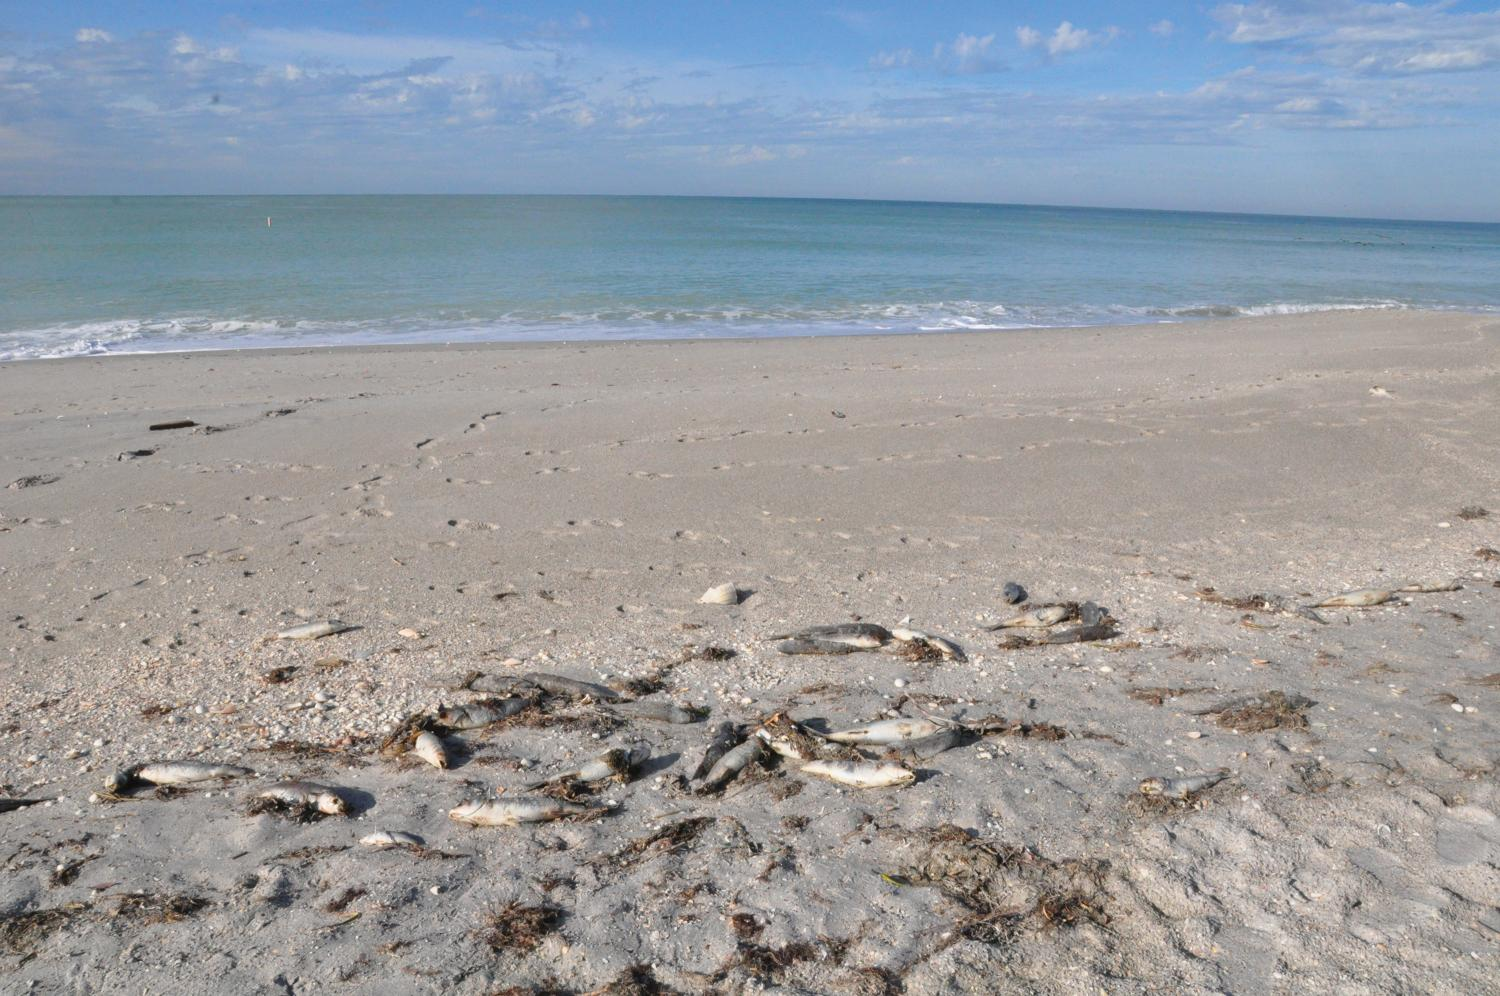 Researchers Expect No Major Red Tide Outbreaks On Florida